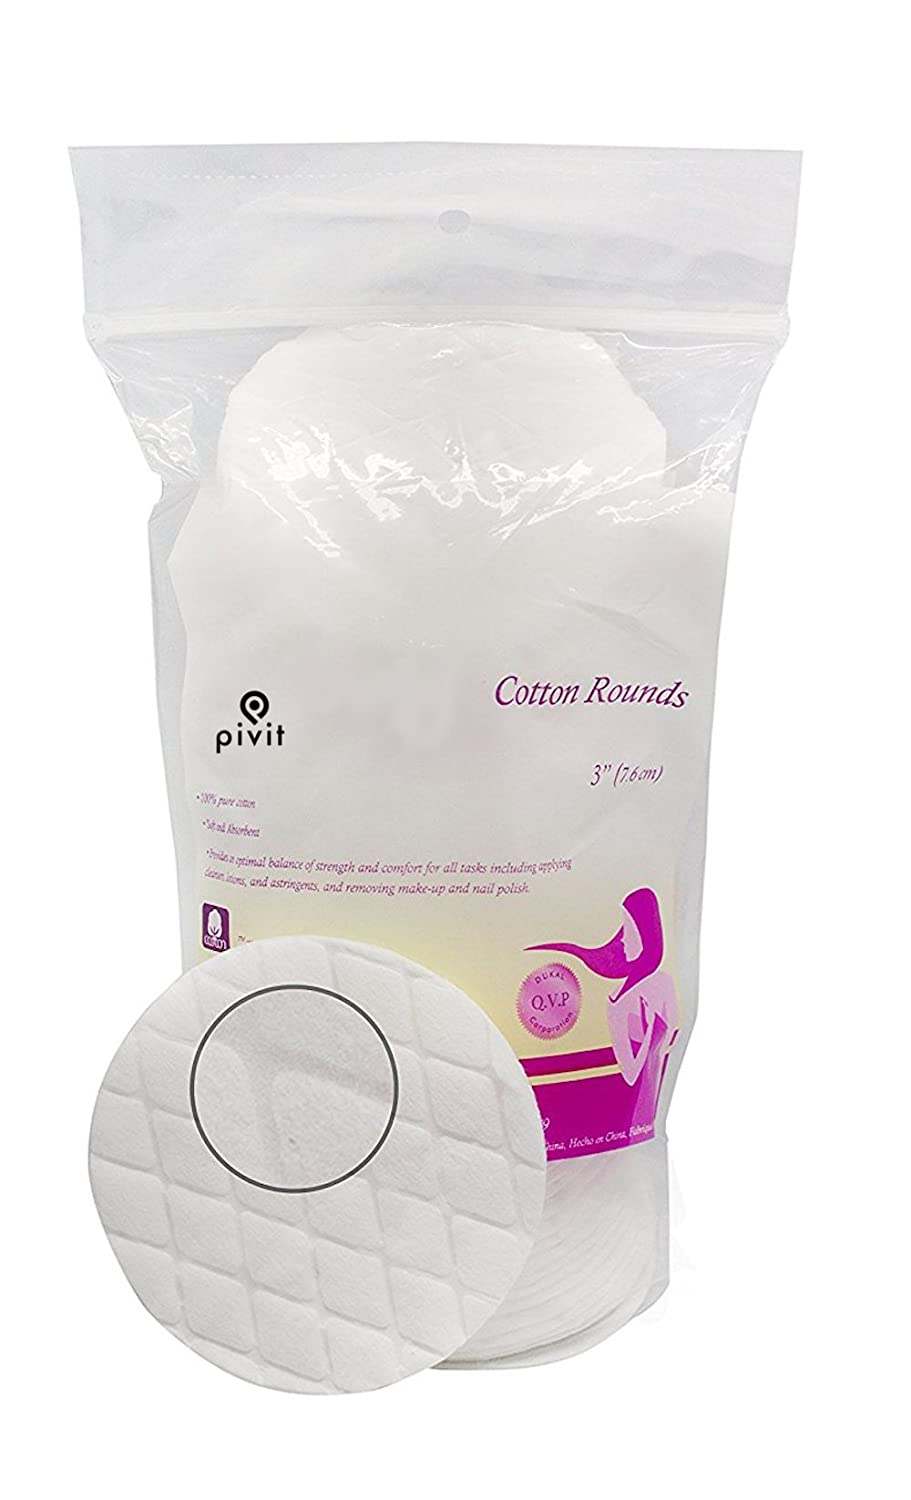 Pivit Facial Cleansing Cotton Rounds | 3 | Bag of 50 | Plush Ultra Absorbent Quilted Organic Pad For Exfoliating Sensitive Skin | Use Wet Or Dry Remove Makeup & Nail Polish Apply Toners & Lotions